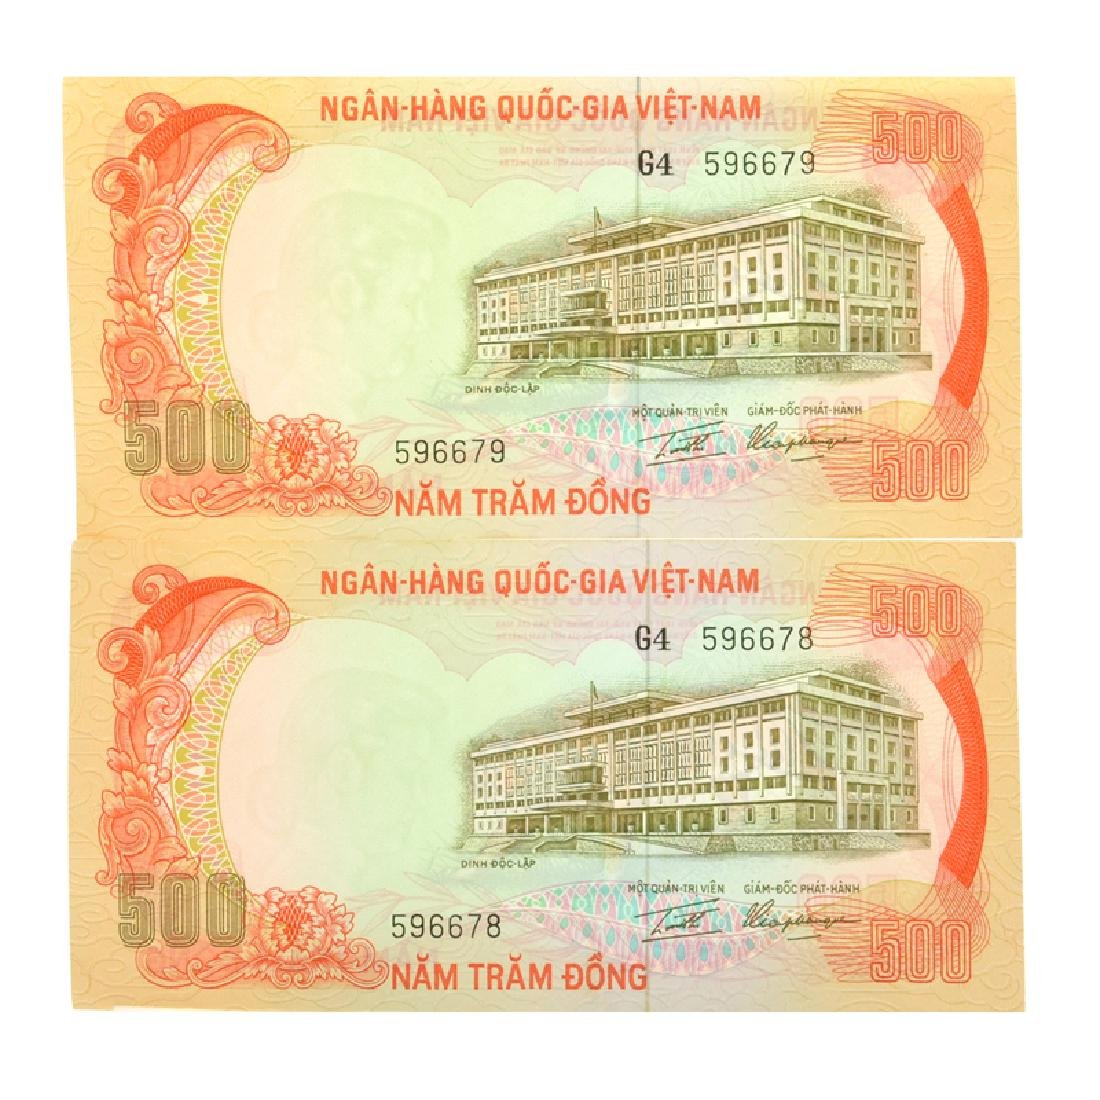 Vietnam South P33a 500 Dong Banknotes (2) - 2